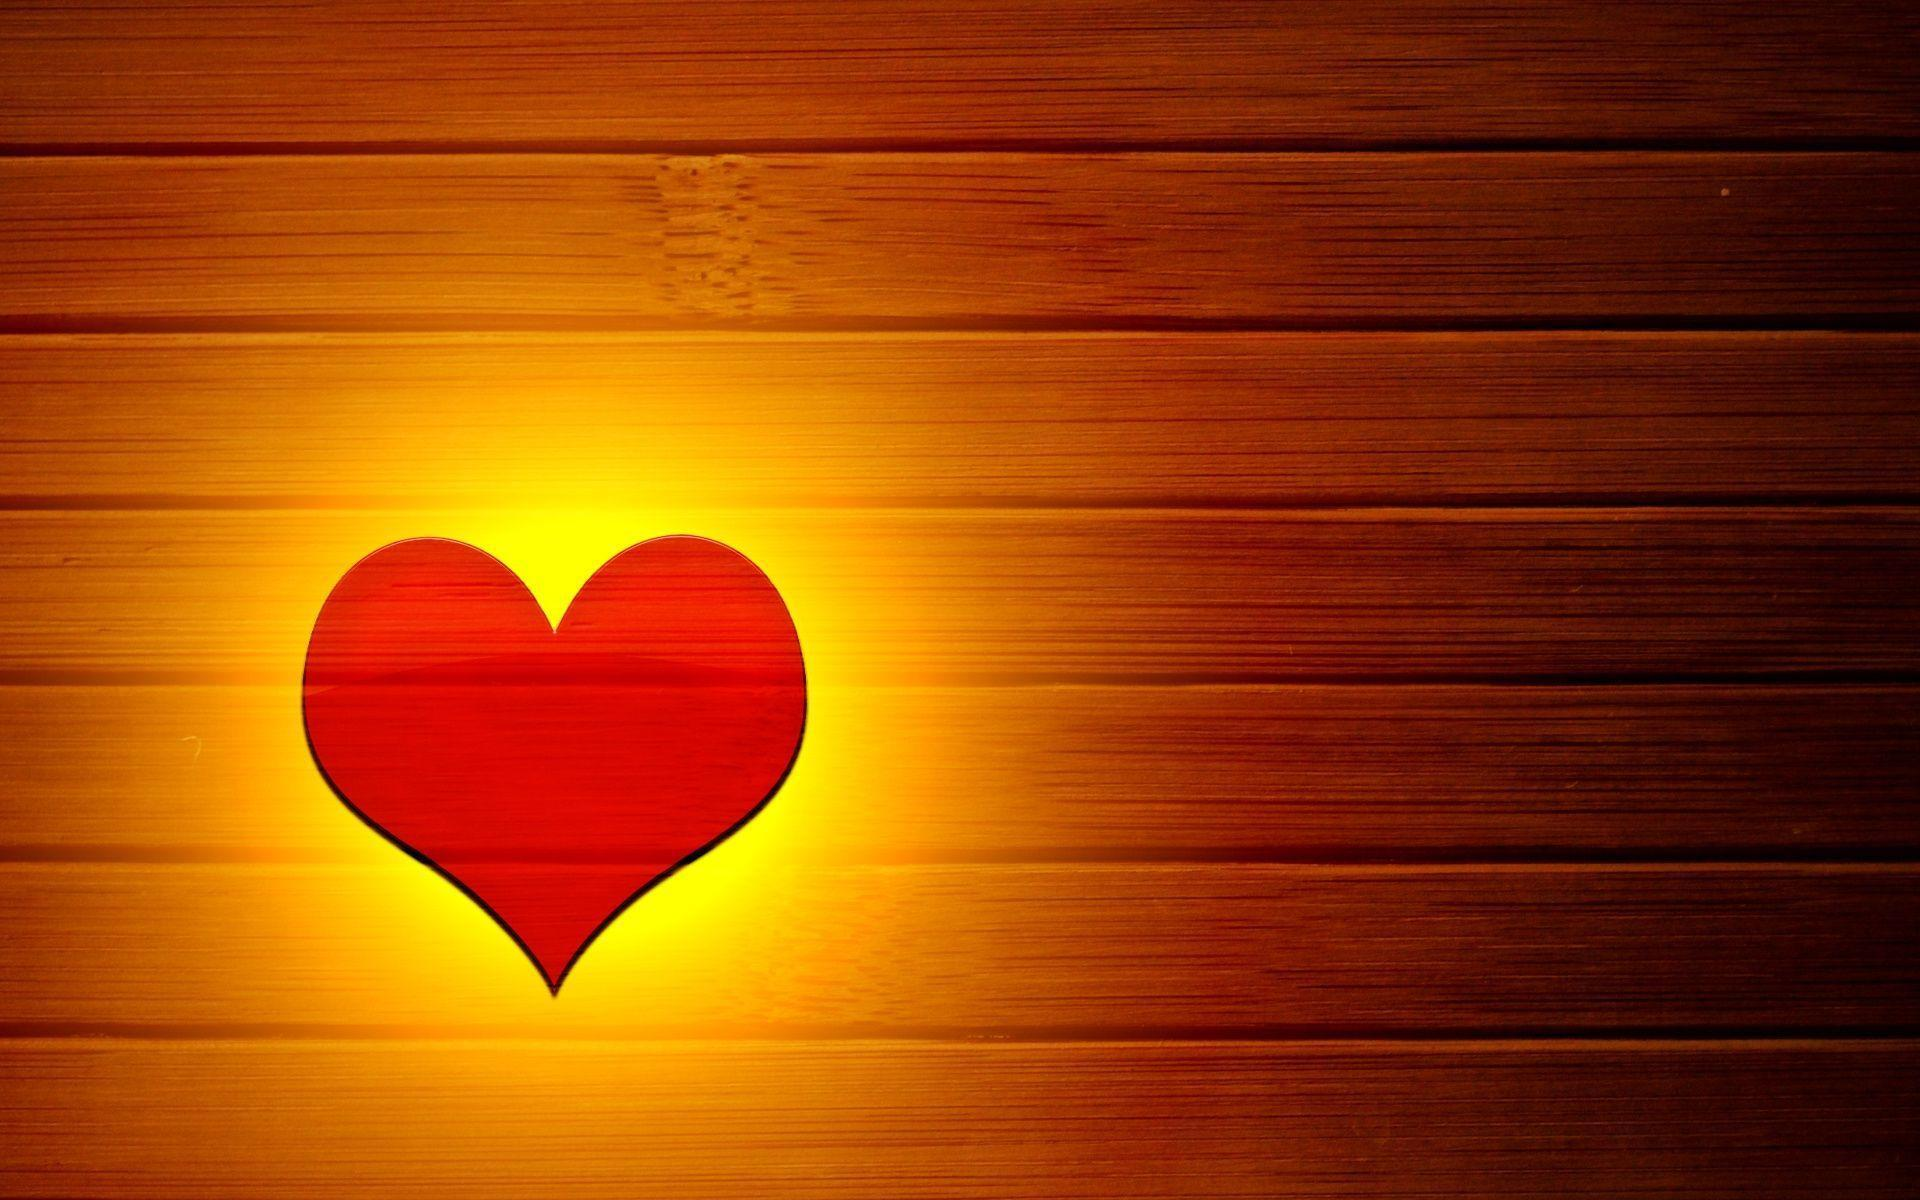 Love Wallpaper For Background : Love Backgrounds Wallpapers - Wallpaper cave